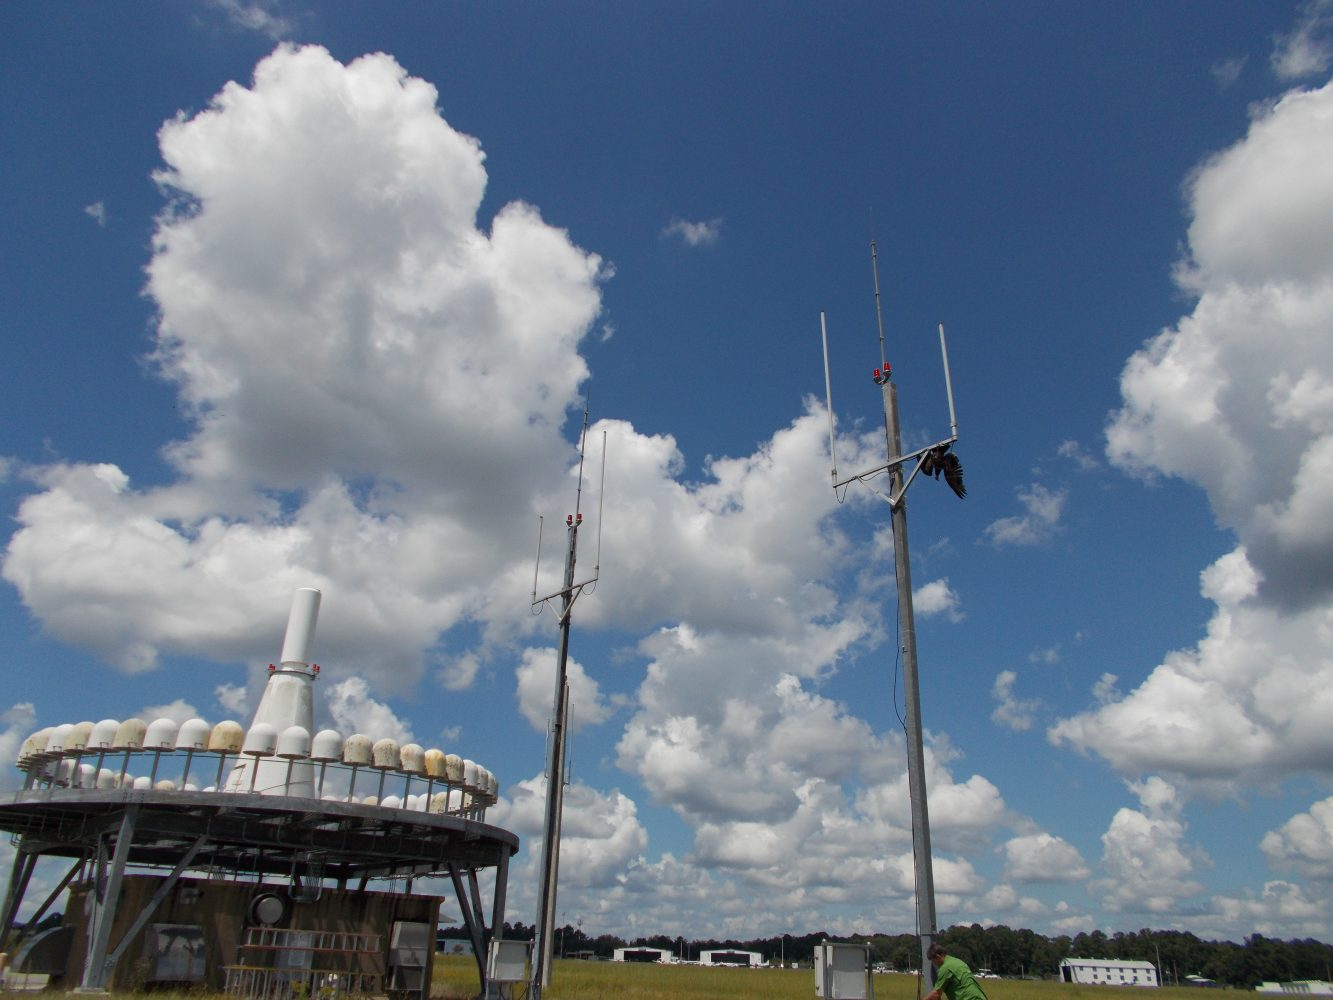 A vulture effigy is hung from an antenna at the Gainesville Regional Airport. The vultures like to perch on the antennas which damages them.